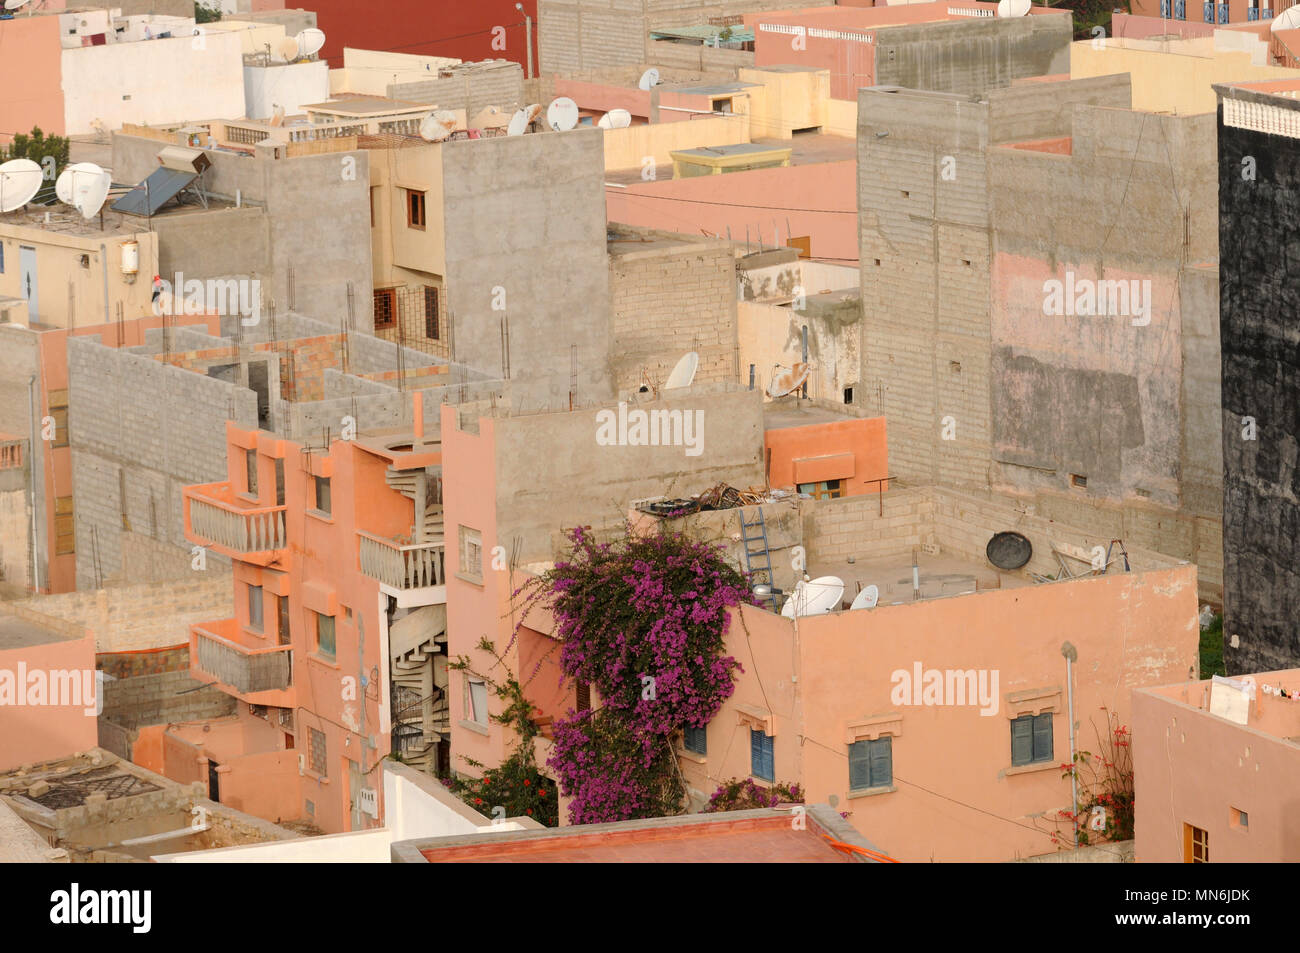 Awe Inspiring Moroccan Homes Houses In Tagazout Morocco Stock Photo Interior Design Ideas Gentotryabchikinfo